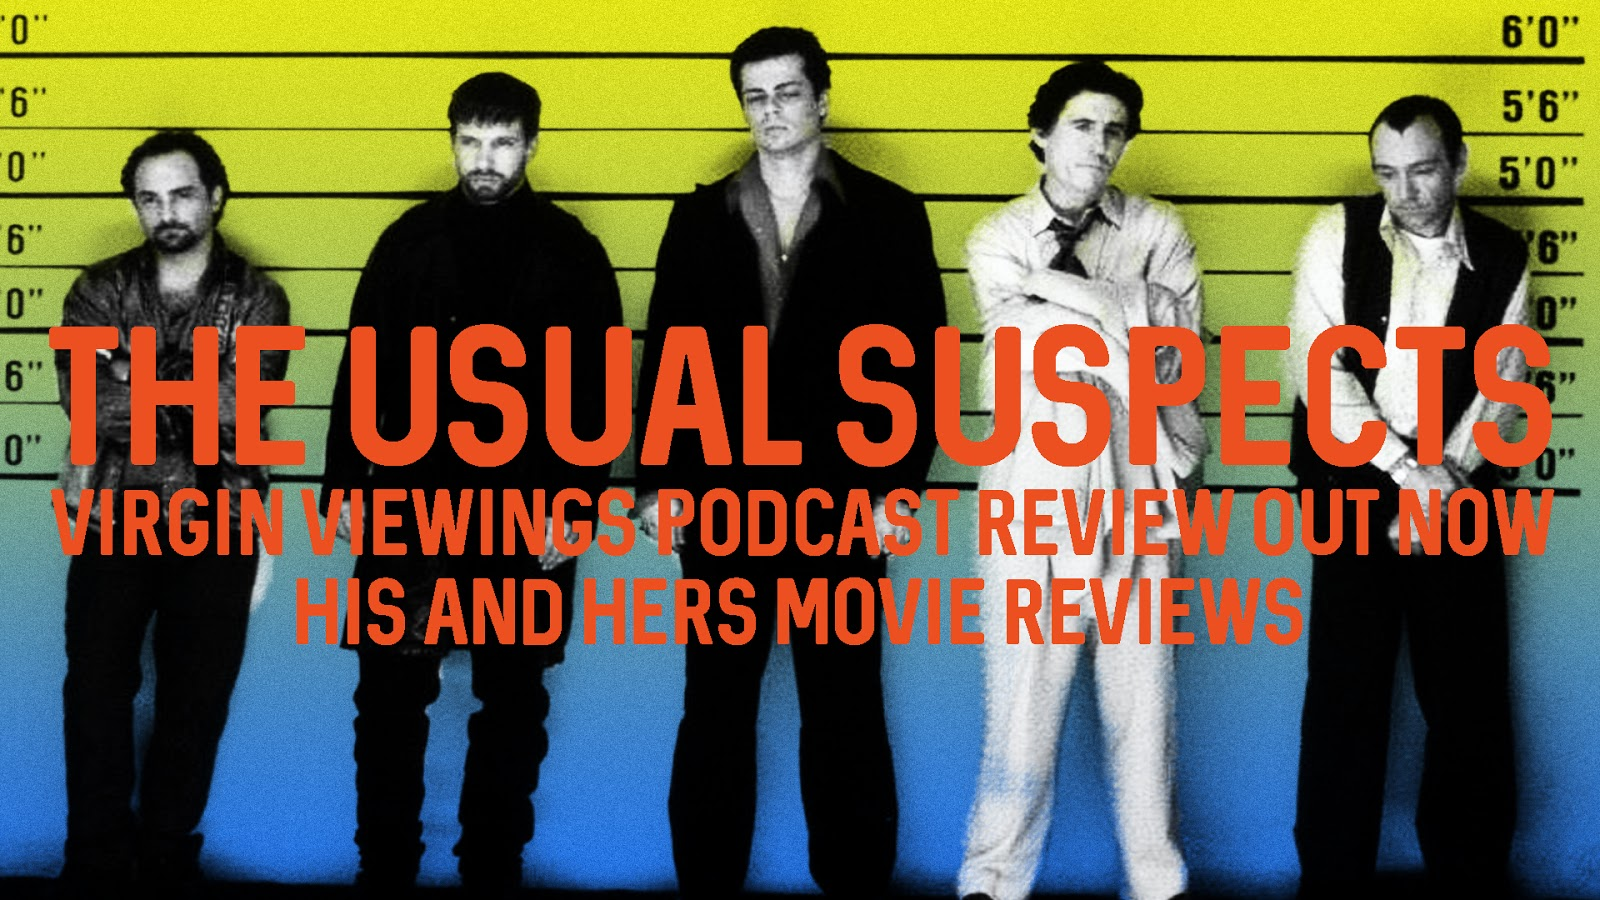 a review of the movie the usual suspects Review: if the usual suspects was a guy in a bar, it would be the bourbon-soaked philosopher who spins elegantly cynical shaggy-dog stories that seem far less compelling in the light of the.